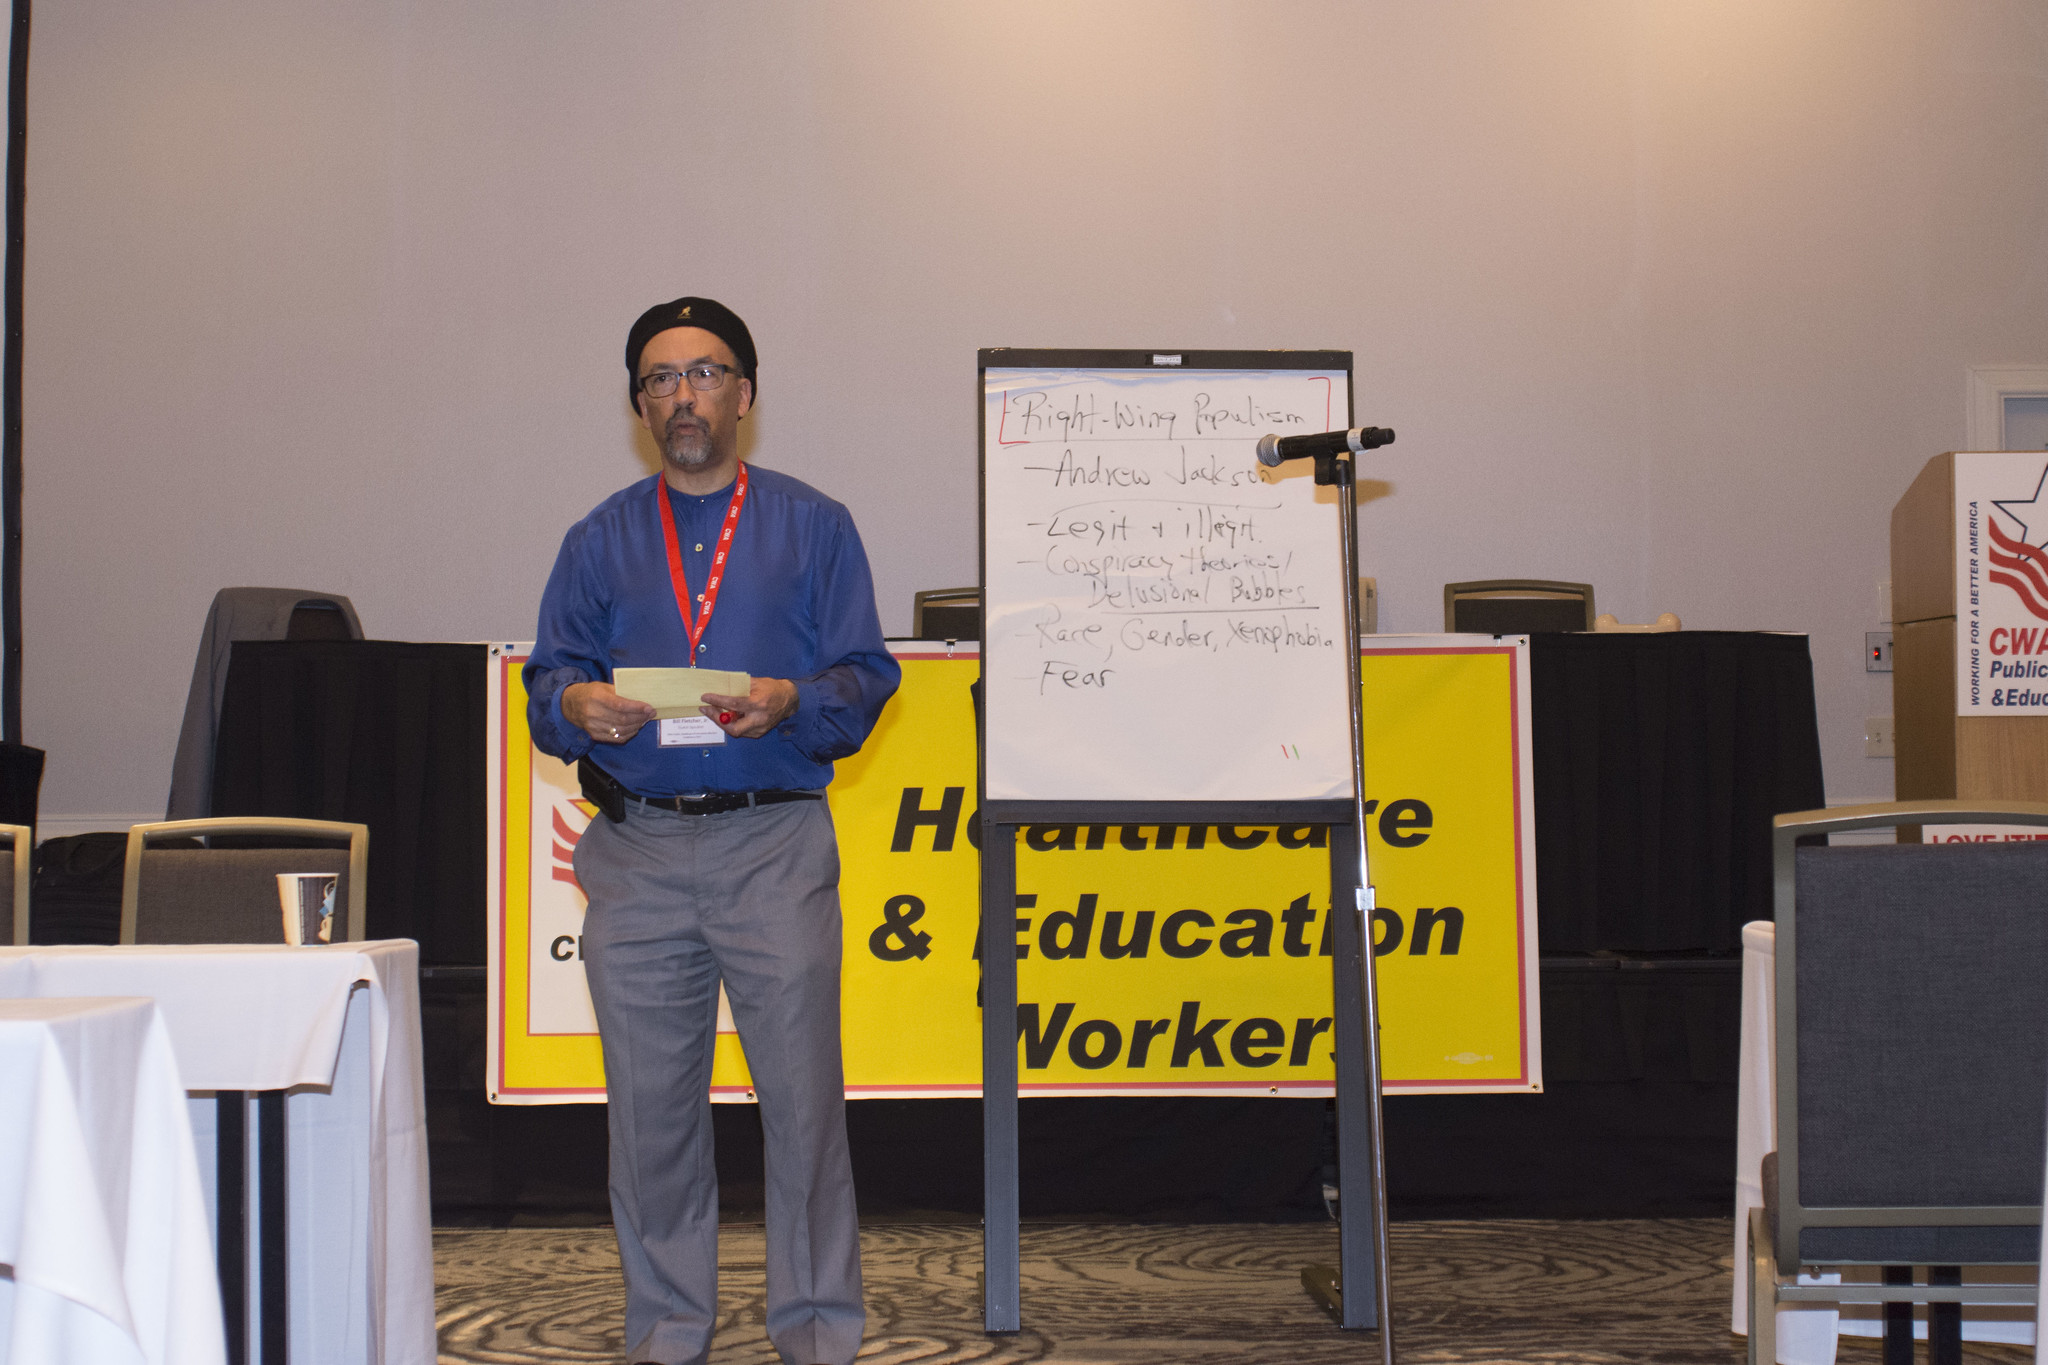 2017 Public, Healthcare, and Education Workers Conference Workshops